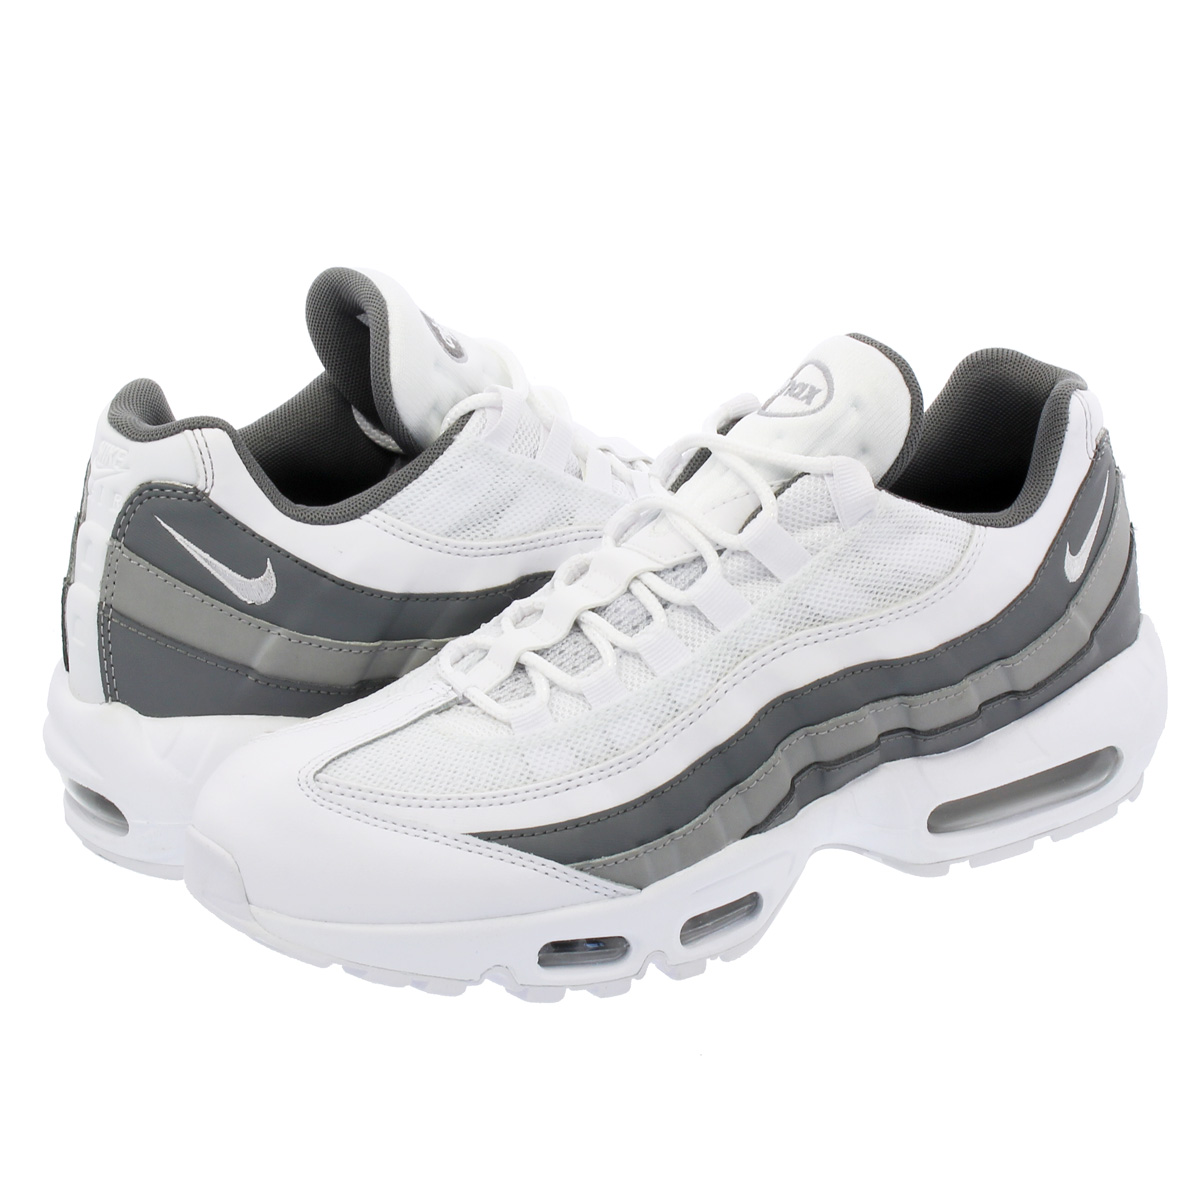 3fa5ba180136 SELECT SHOP LOWTEX  NIKE AIR MAX 95 ESSENTIAL Kie Ney AMAX 95 essential  WHITE COOL GREY WOLF GREY